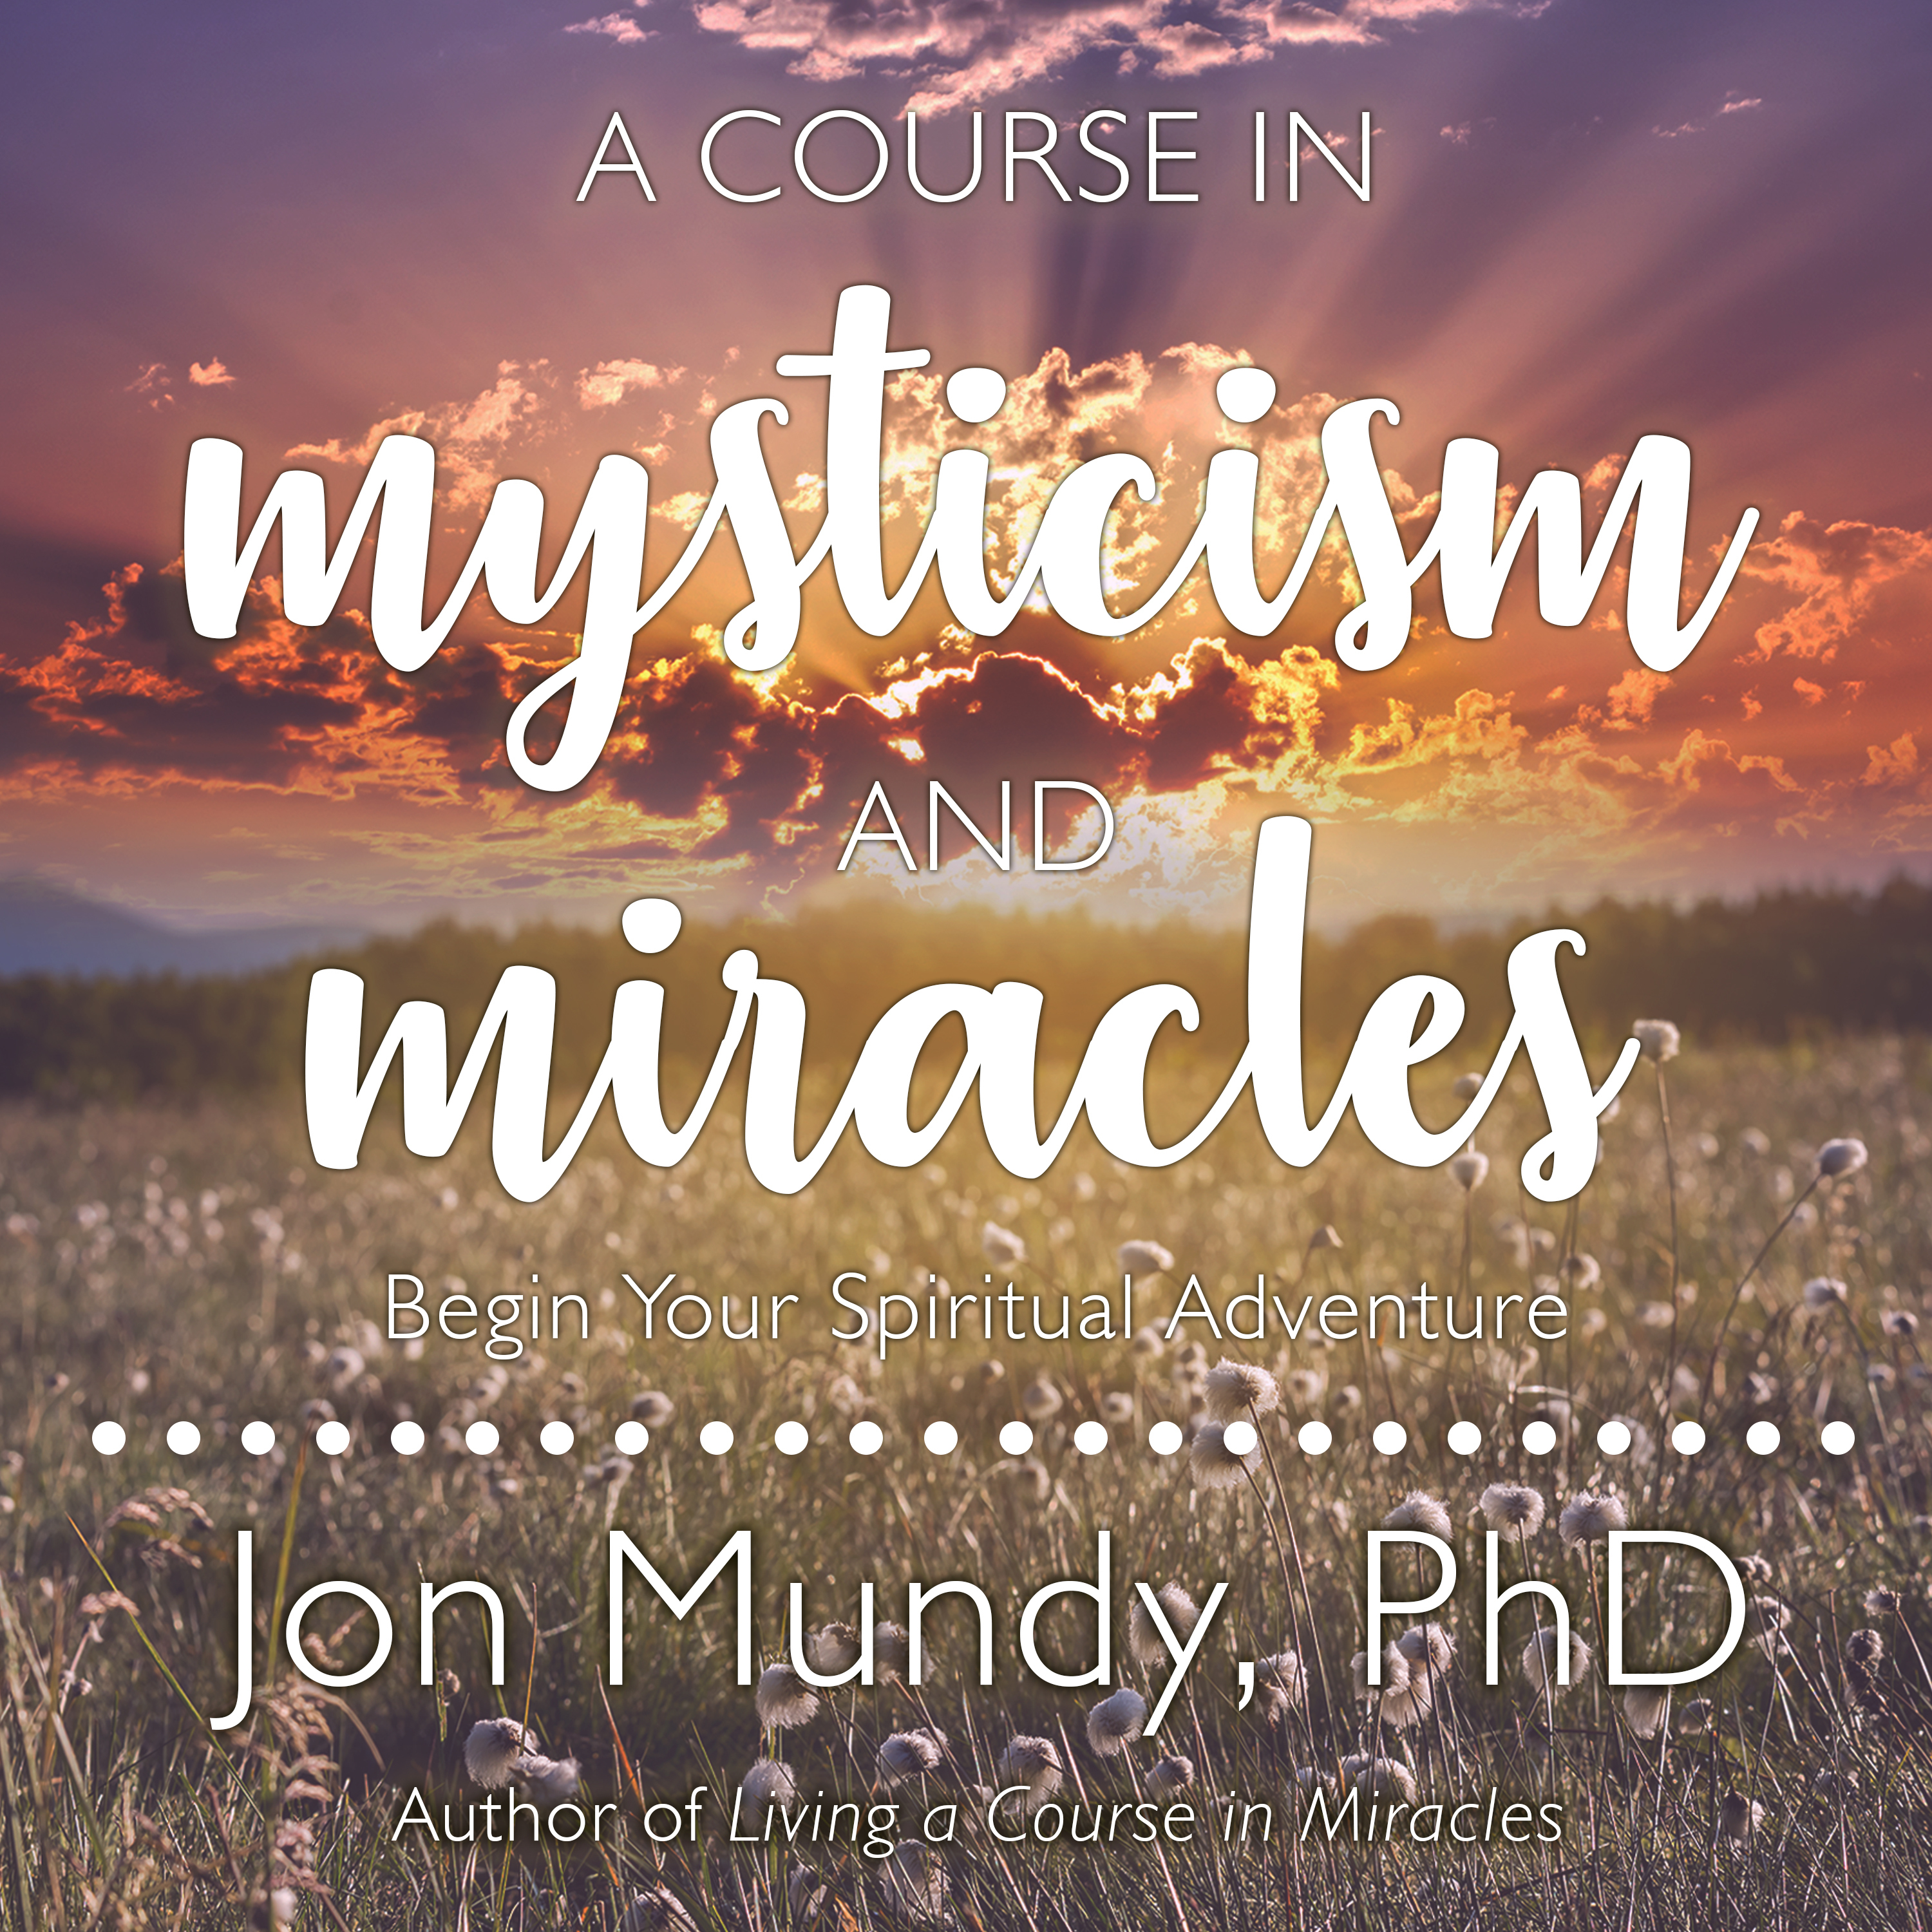 Inspiring teachings on a course in miracles audiobook download free |….